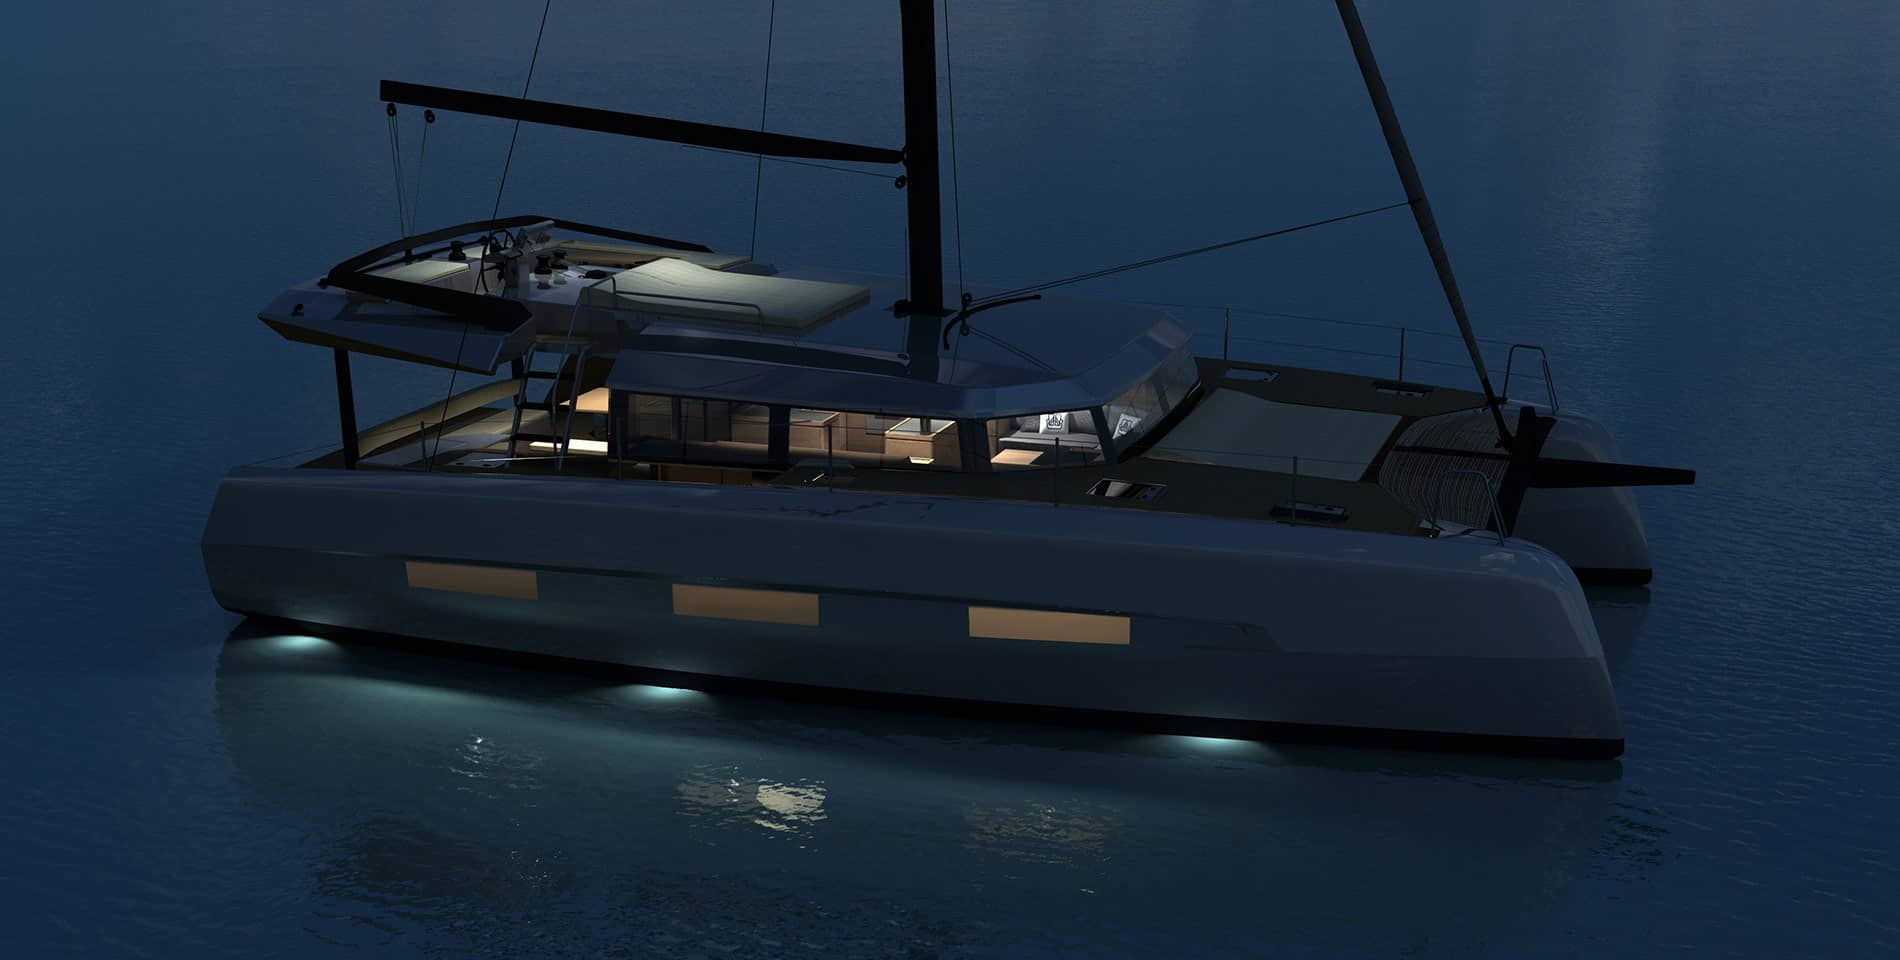 Animated Dufour Catamaran 48 demonstrating the cool lights under the boat lit up in the water